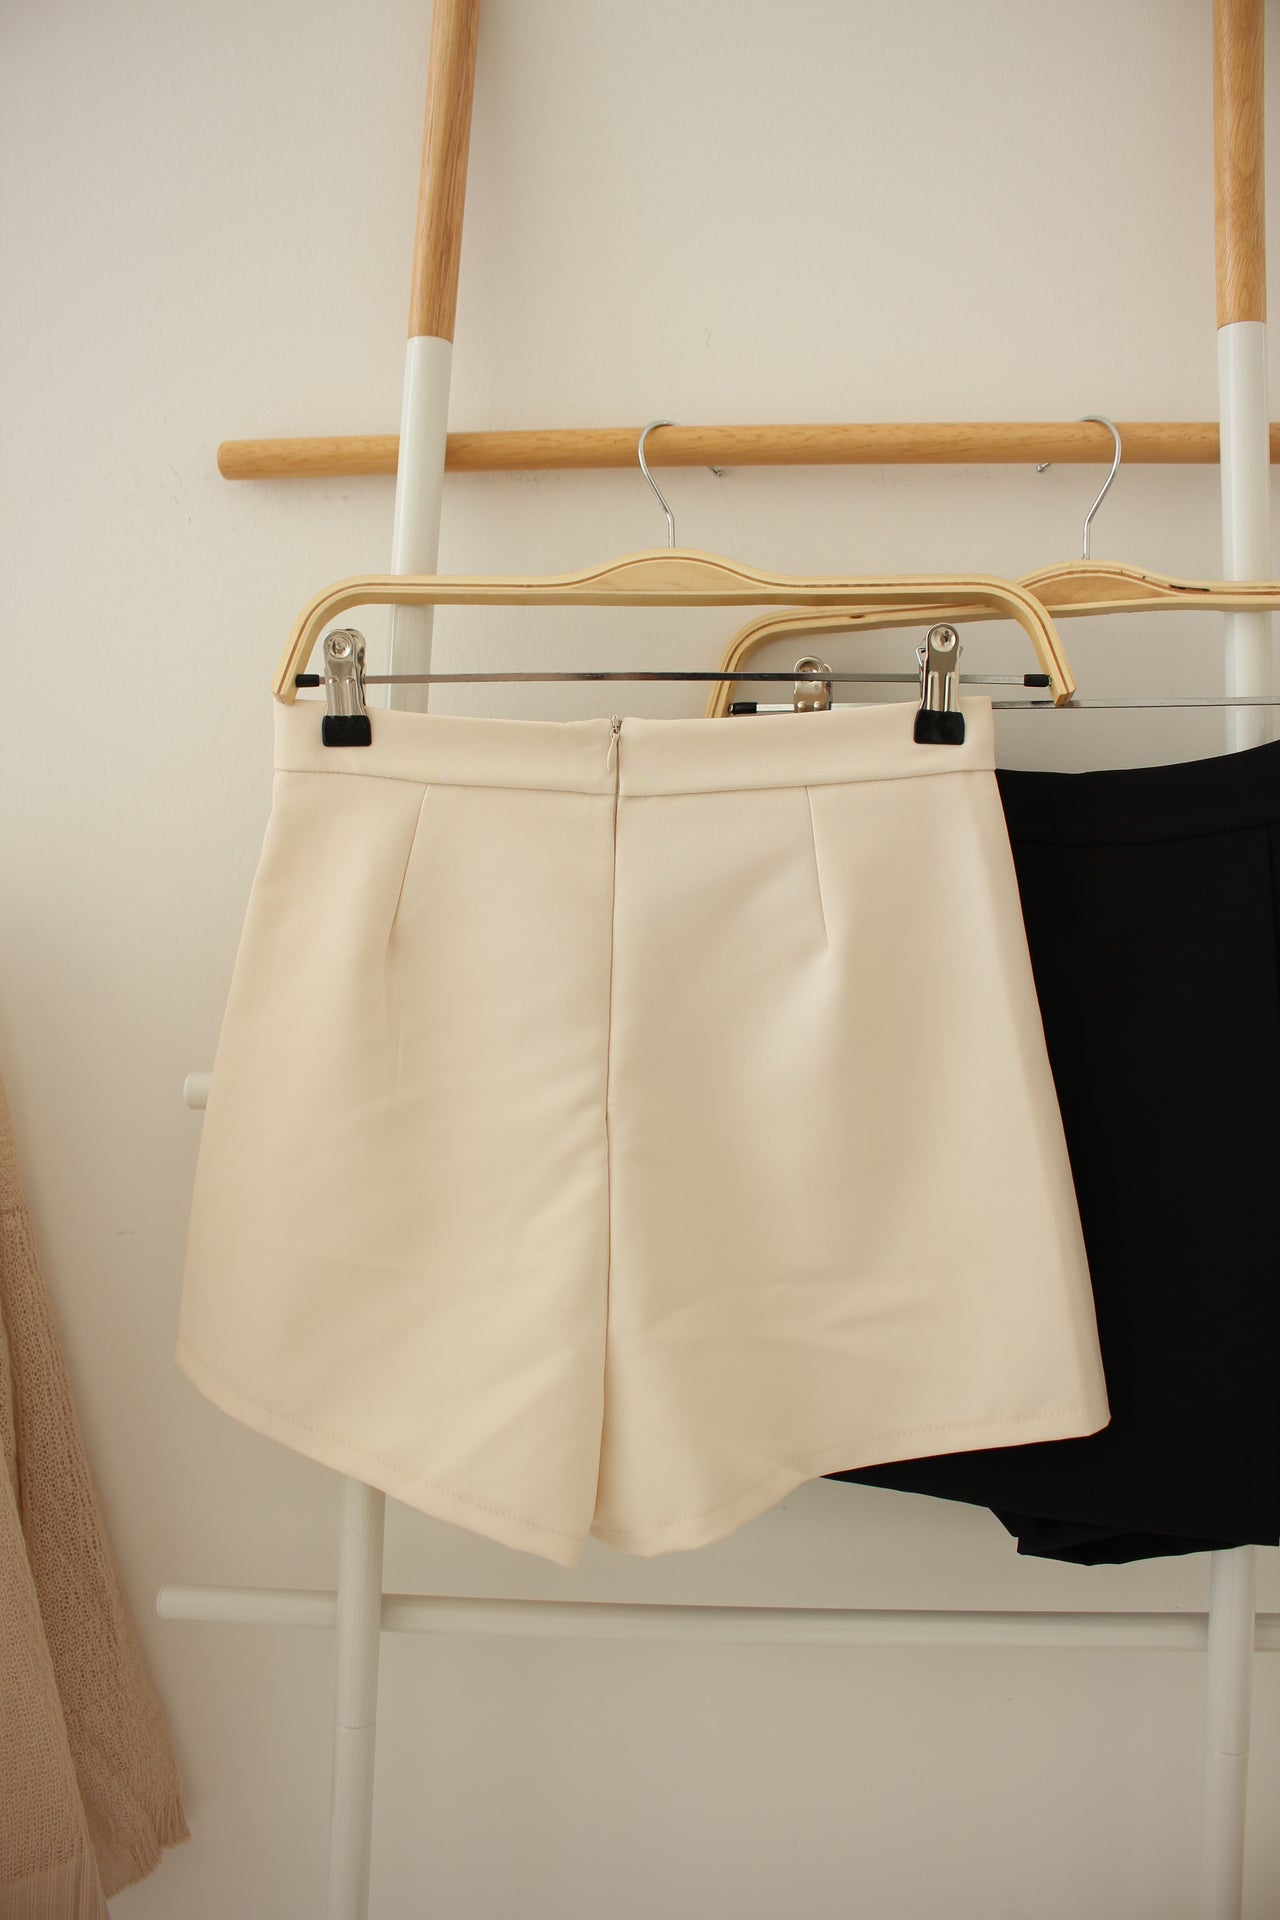 High Waist skort - LovelyMadness Clothing Online Fashion Malaysia